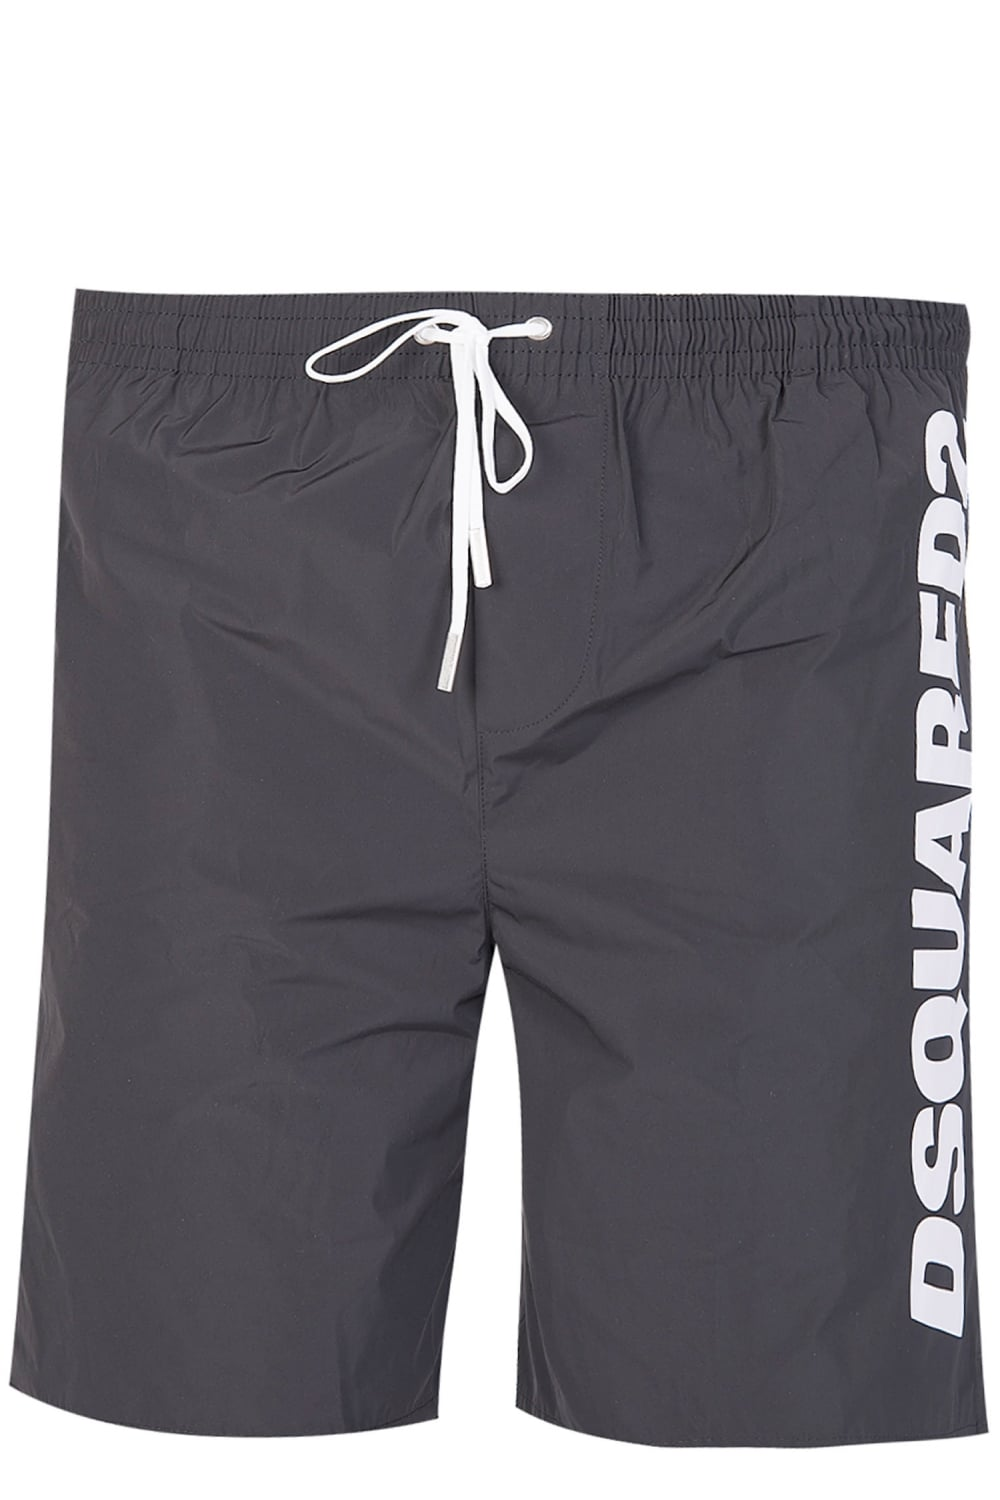 4987d2f2fc55 Dsquared Nylon Logo Swim Shorts Black